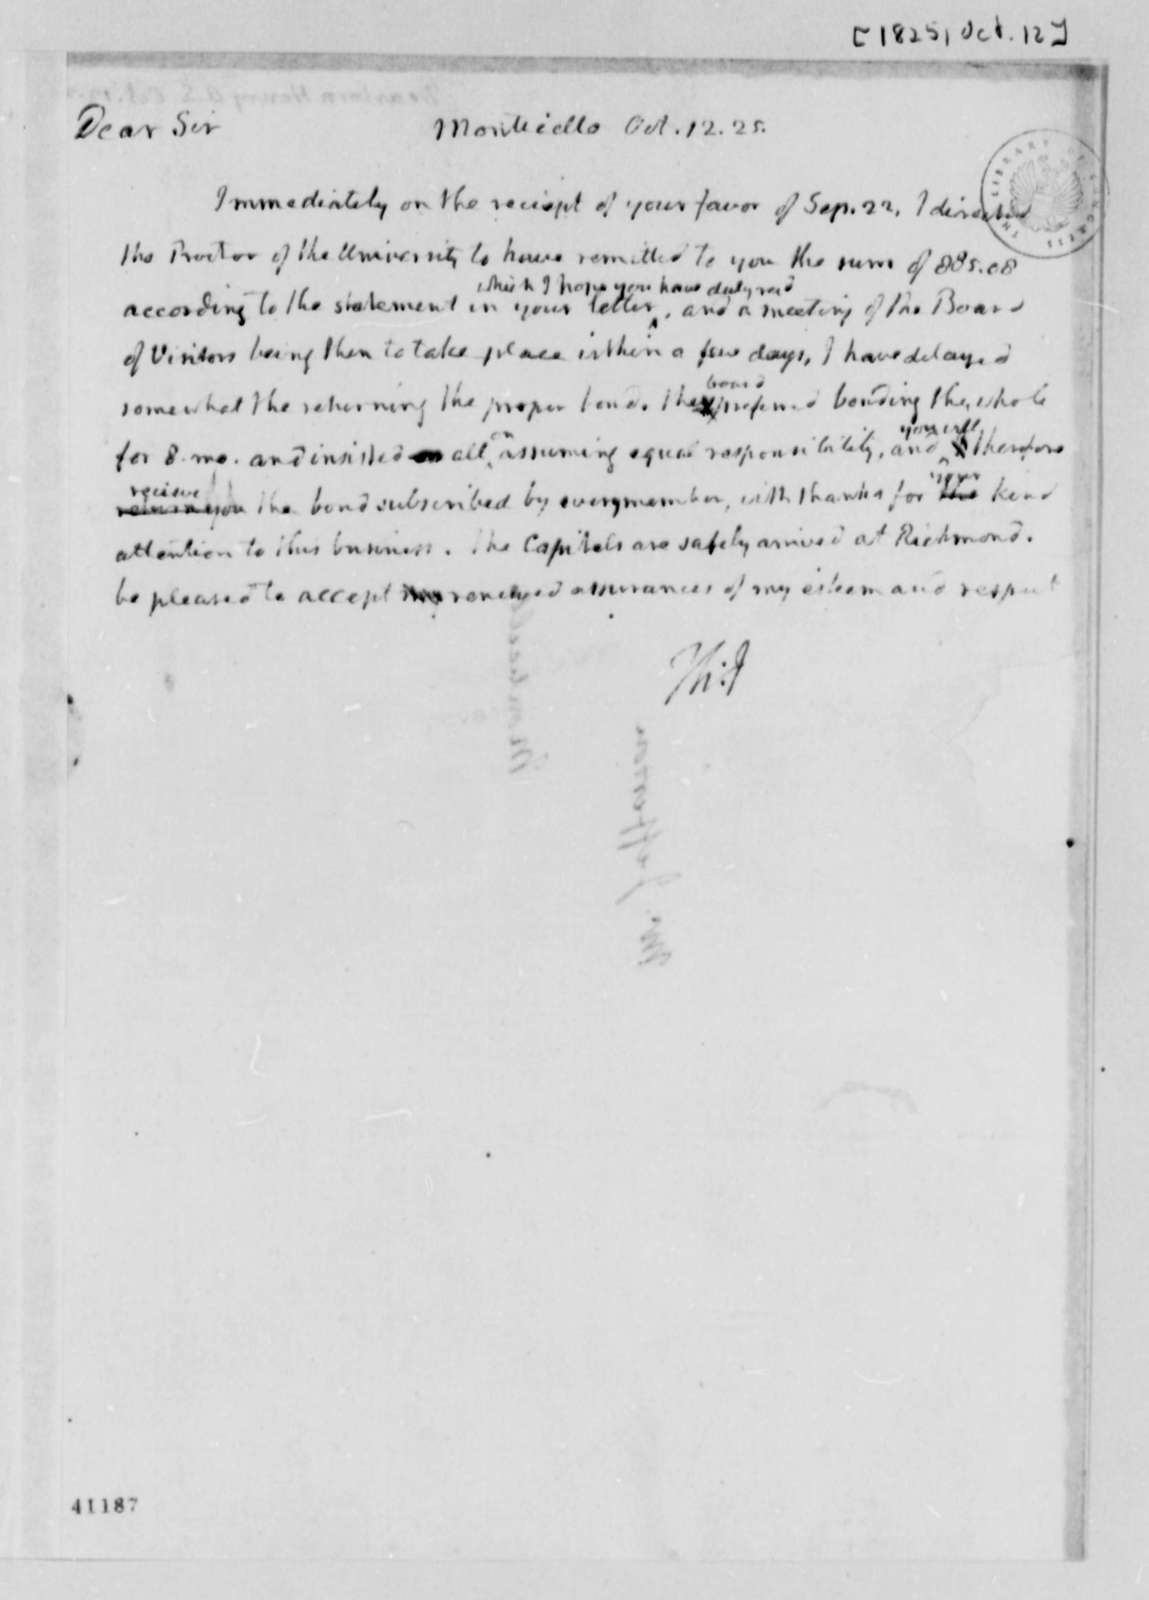 Thomas Jefferson to Henry A. S. Dearborn, October 12, 1825